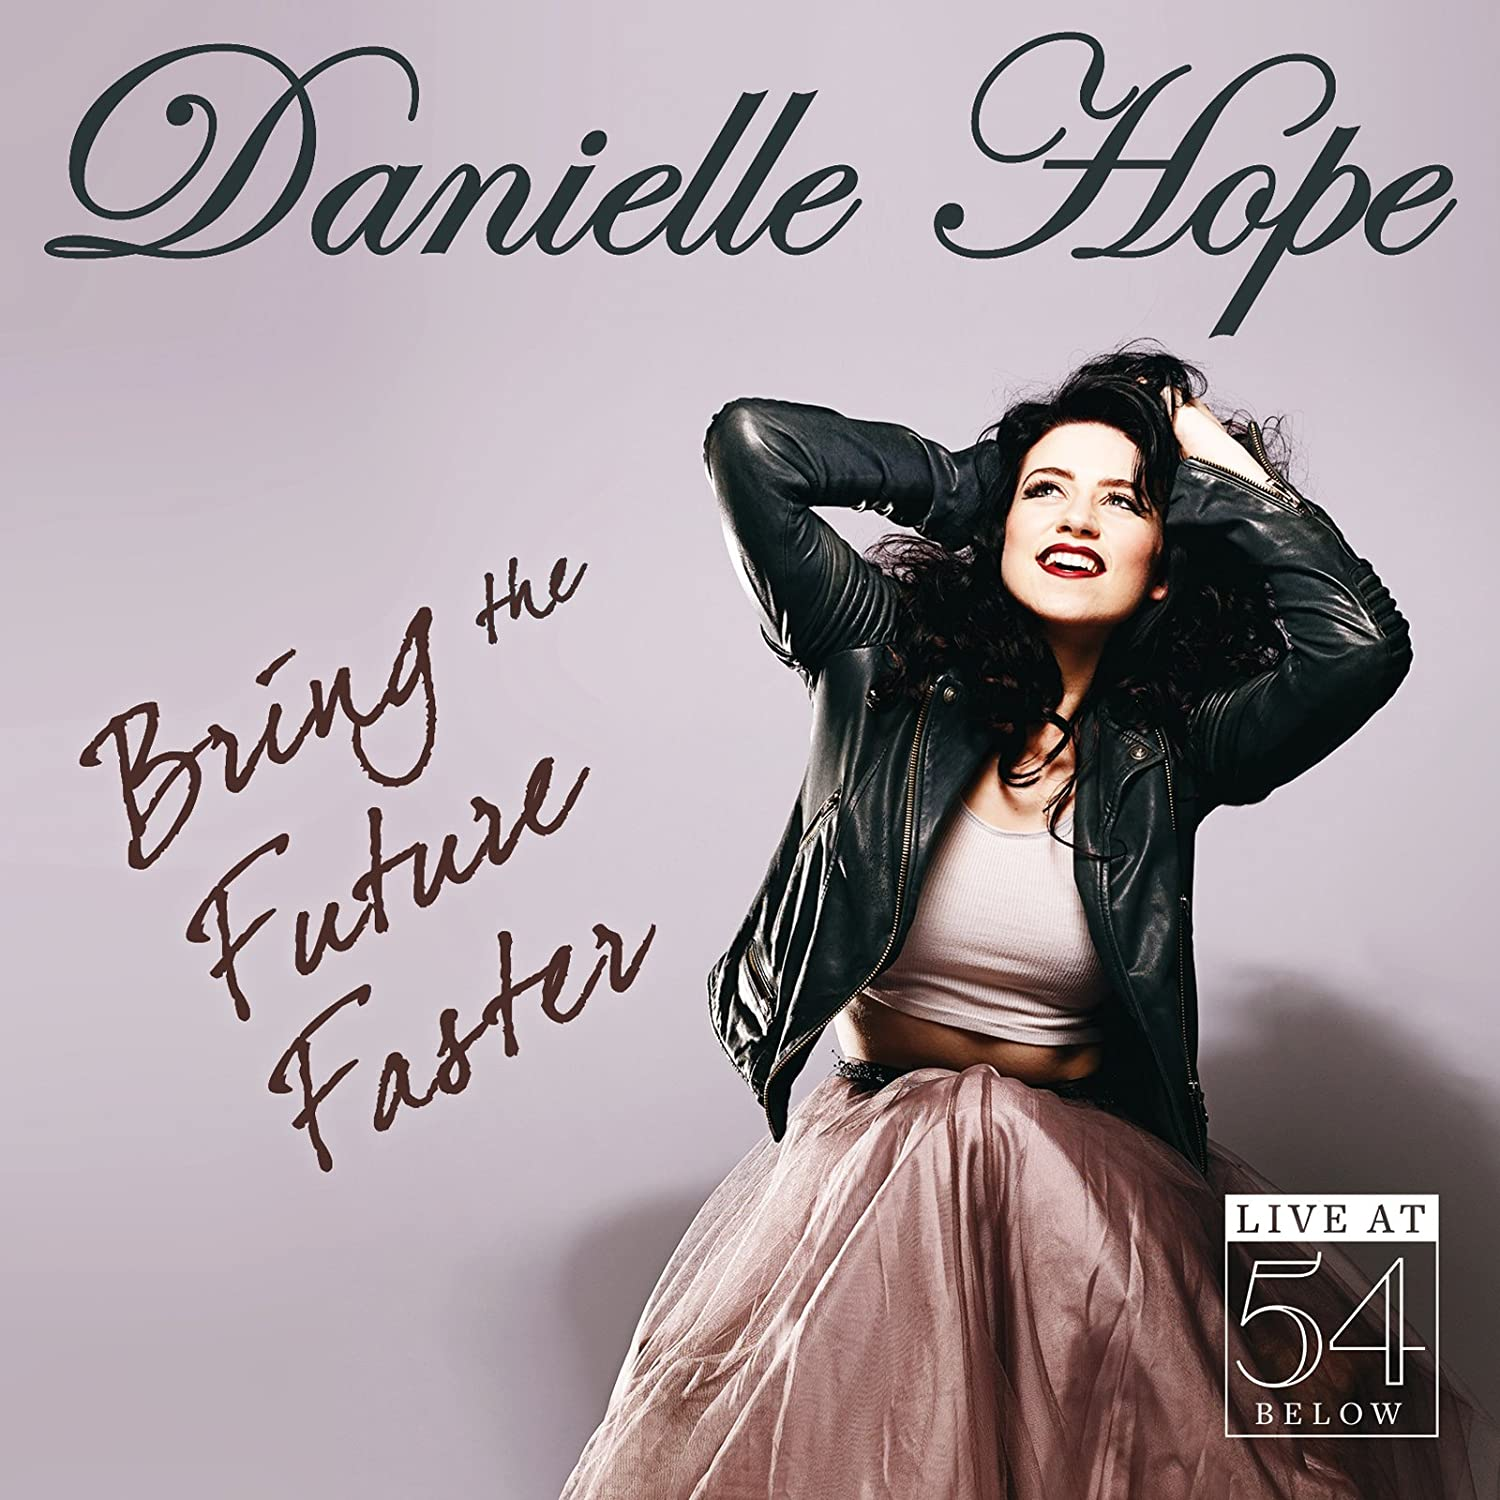 DANIELLE HOPE Bring The Future Faster: Live at 54 Below